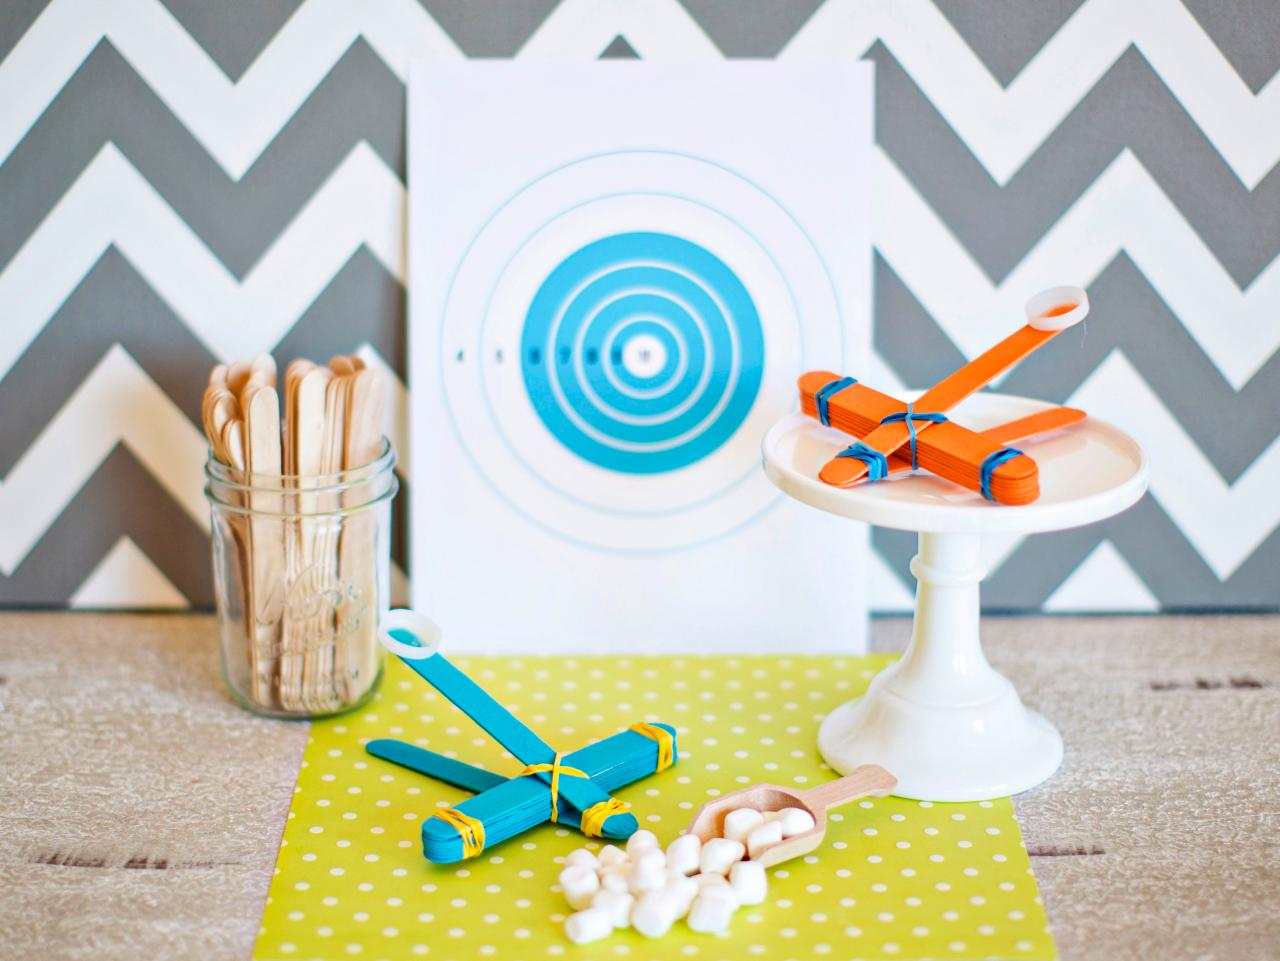 Fun Rainy Day Projects For Kids Diy Network Blog Made Remade Diy